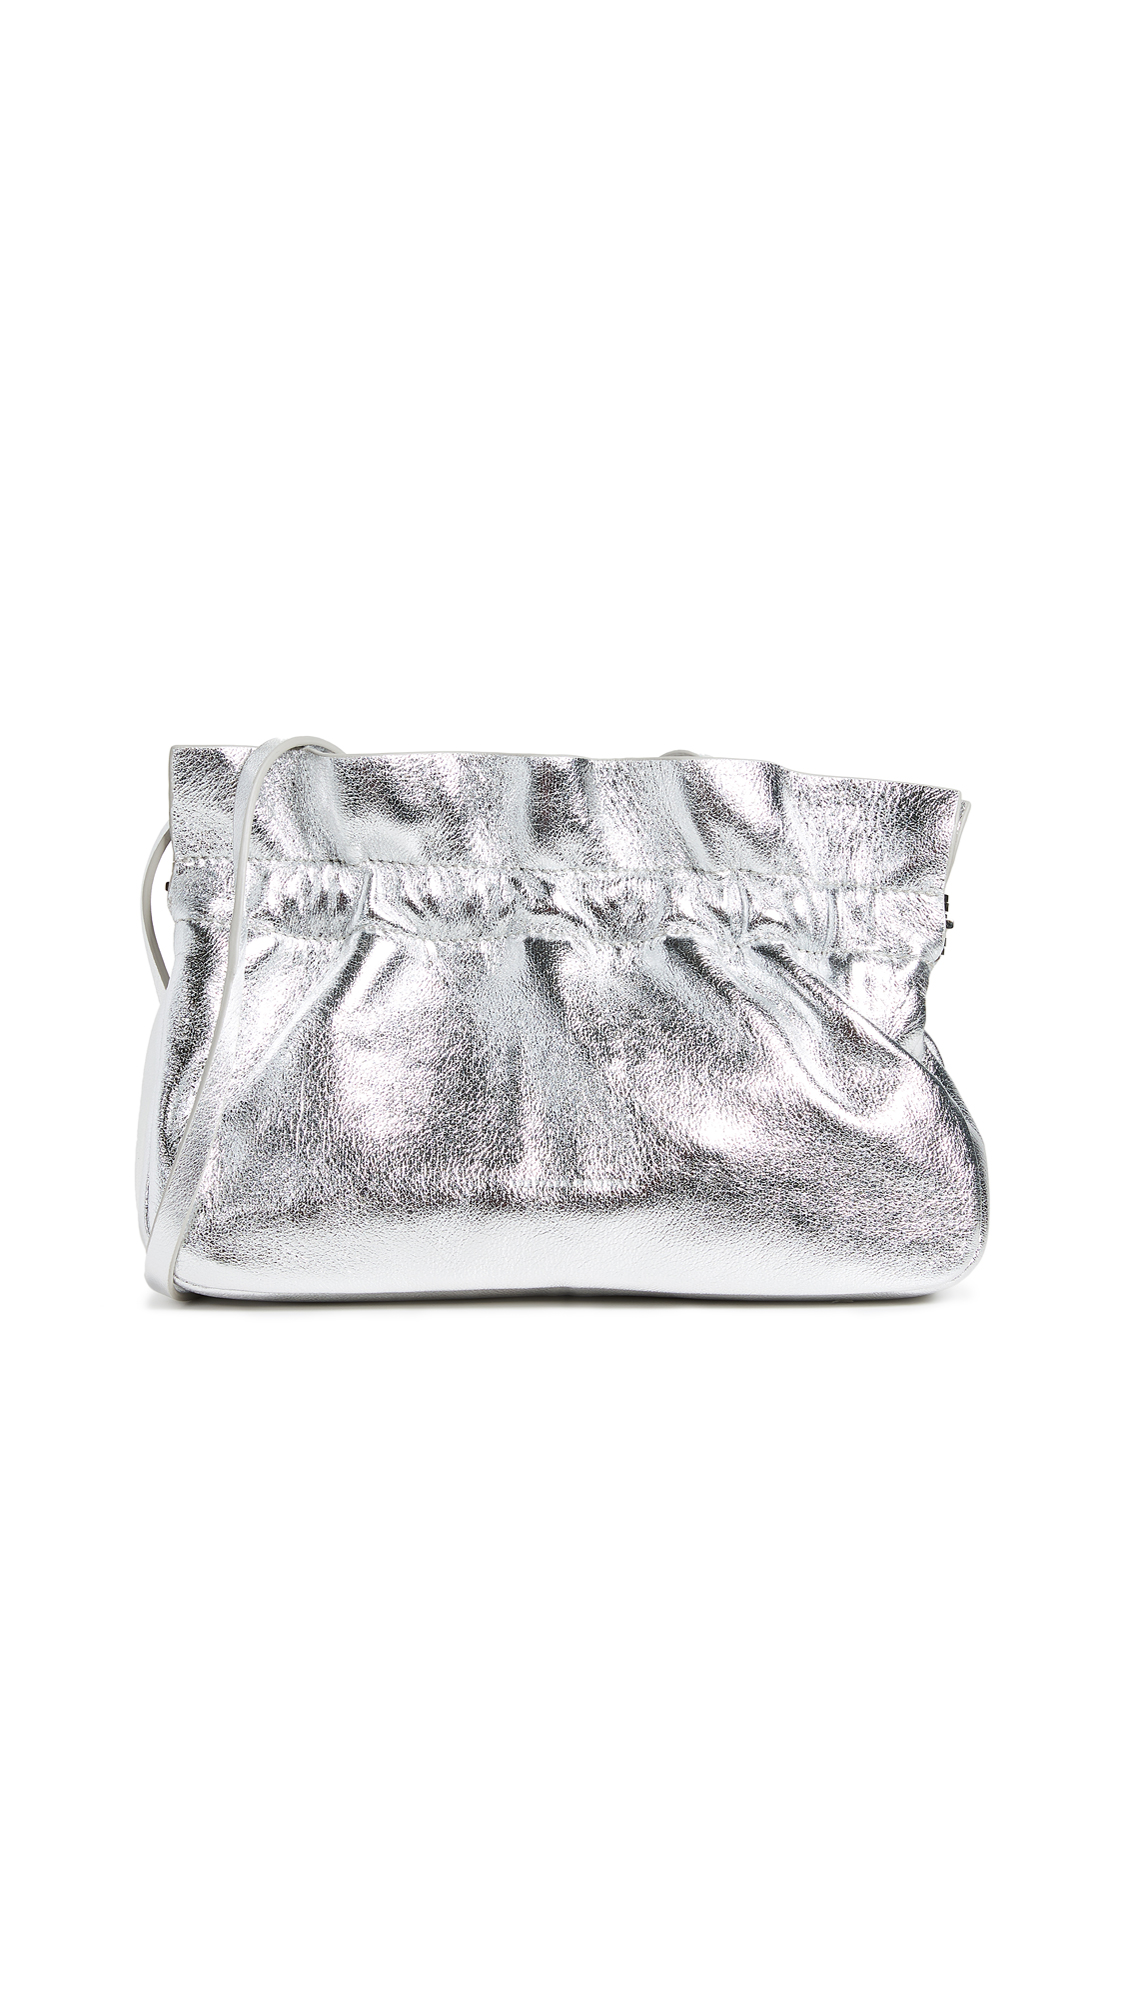 Carrie Metallic Ruffle Frame Clutch Bag, Silver